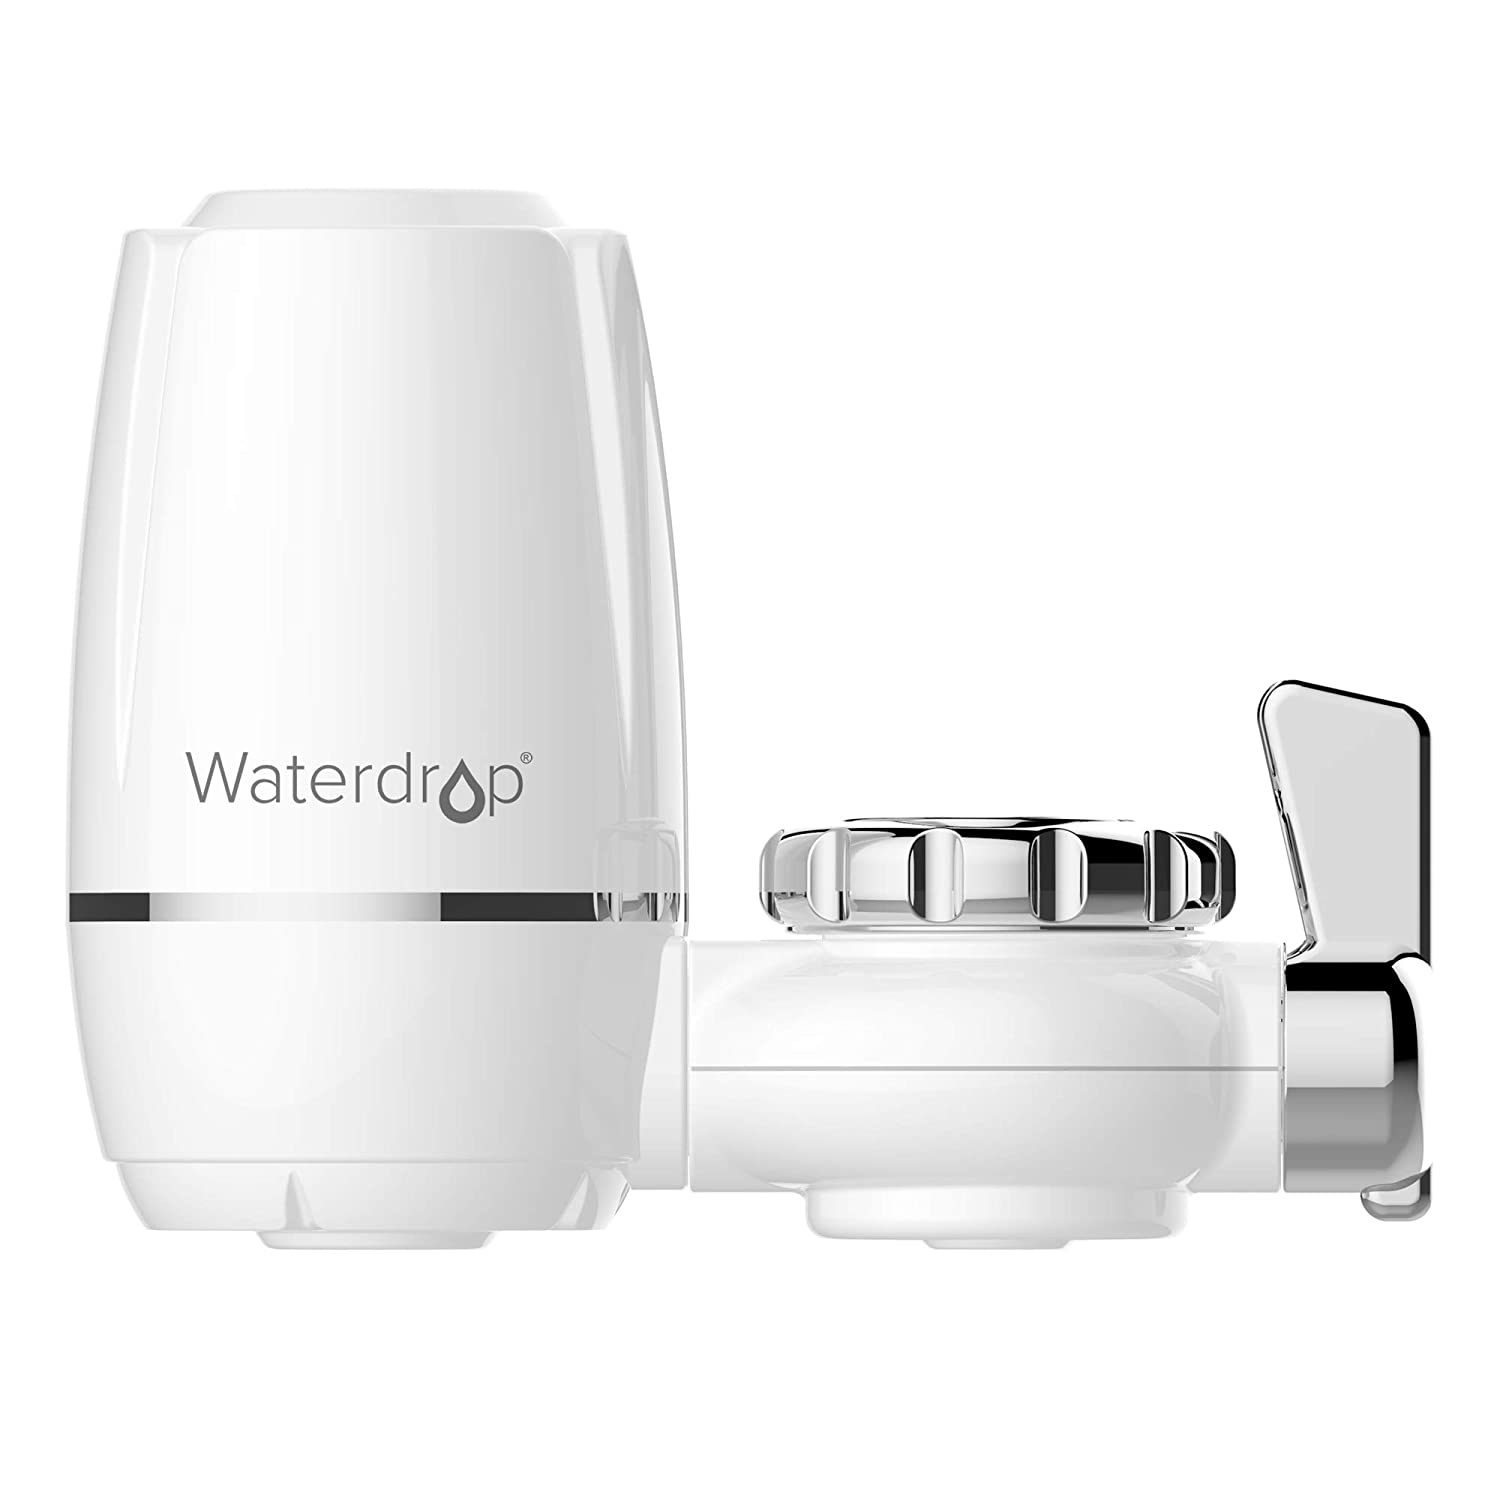 320-Gallon Long-Lasting Water Faucet Filtration System, Faucet Water Filter, Tap Water Filter, Removes Chlorine, Metals & Sediments - Fits Standard Faucets (1 Filter Included), by Waterdrop